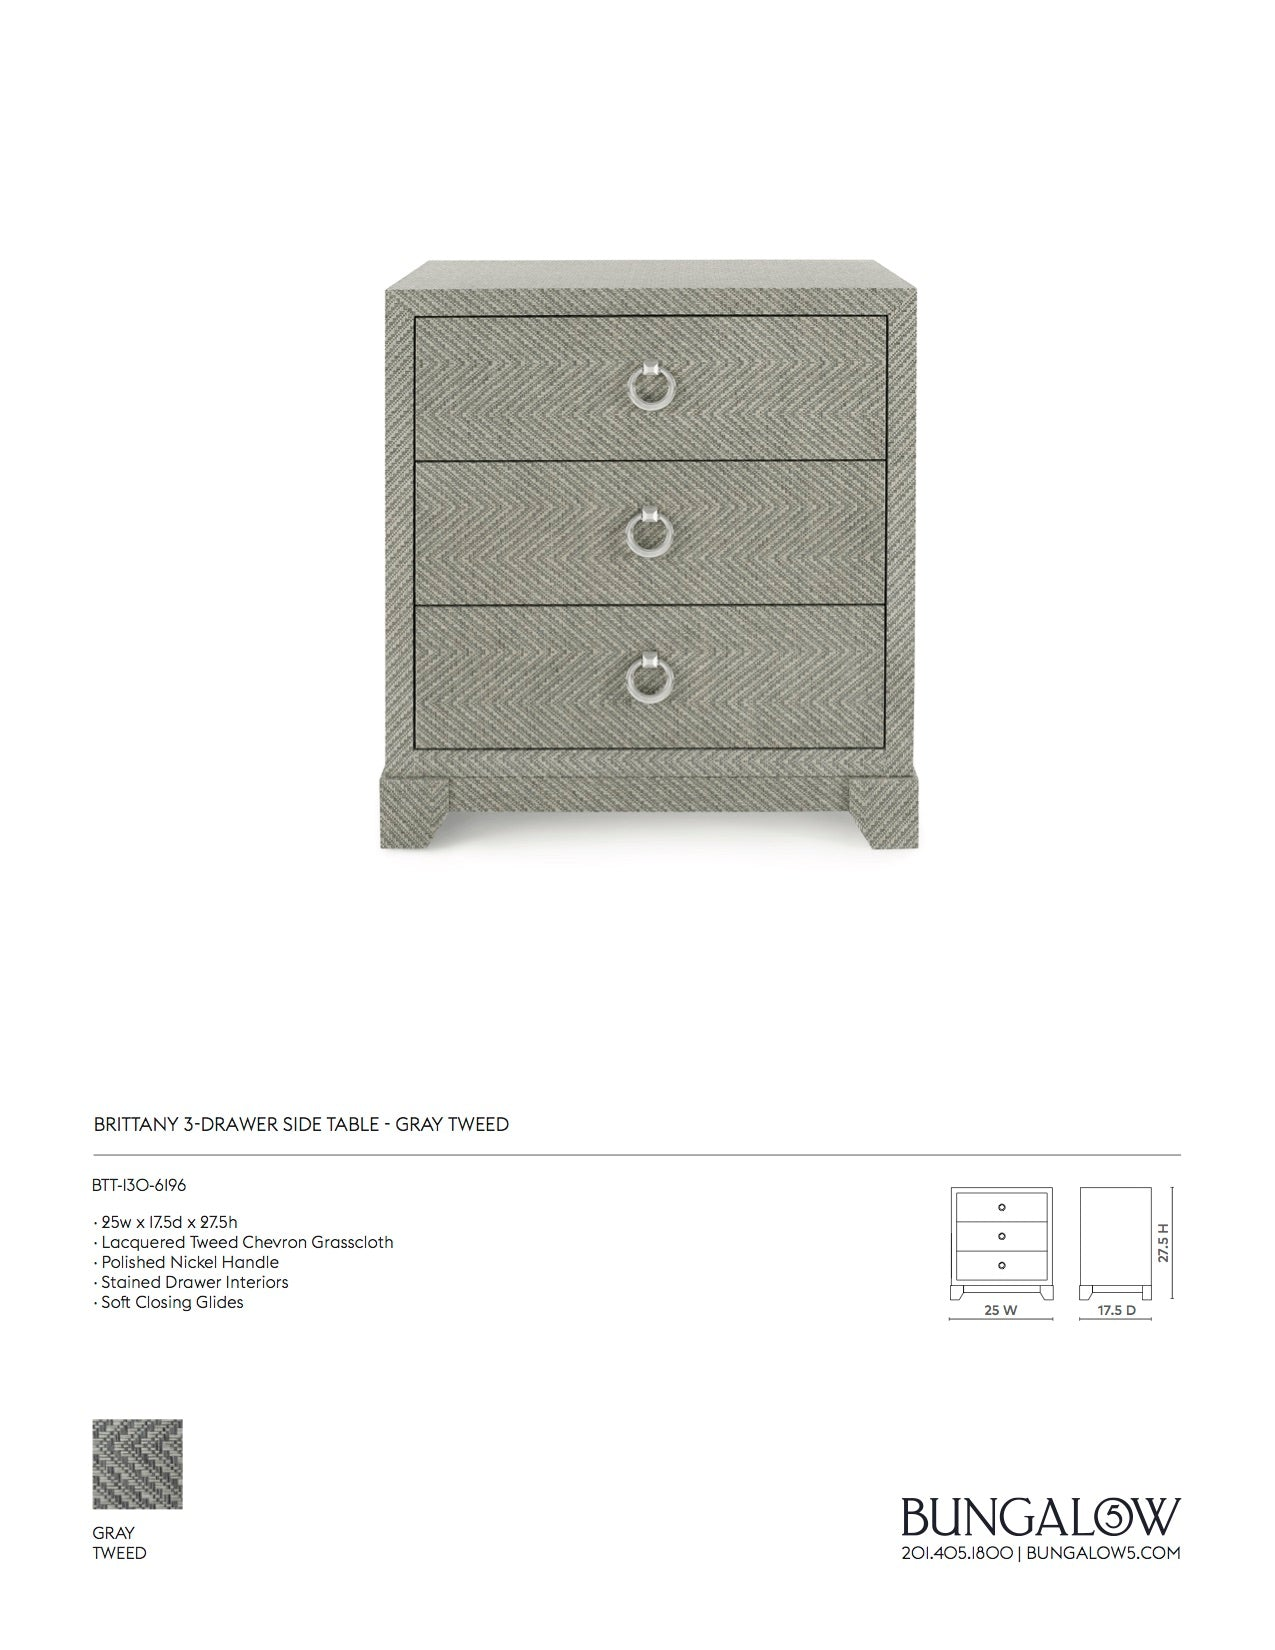 Brittany 3 Drawer Side Table Gray Tweed